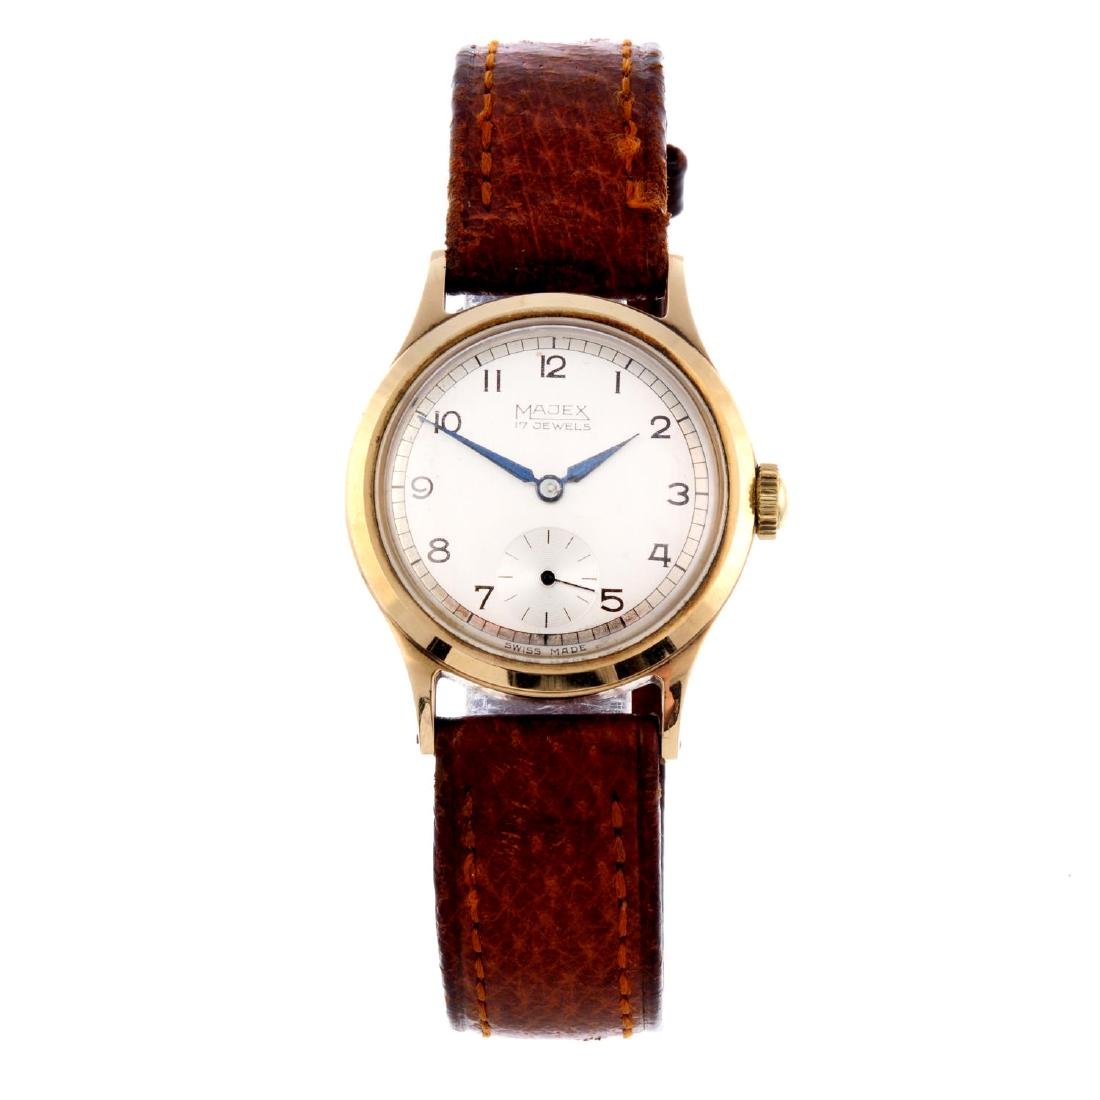 MAJEX - a mid-size wrist watch. 9ct yellow gold case,